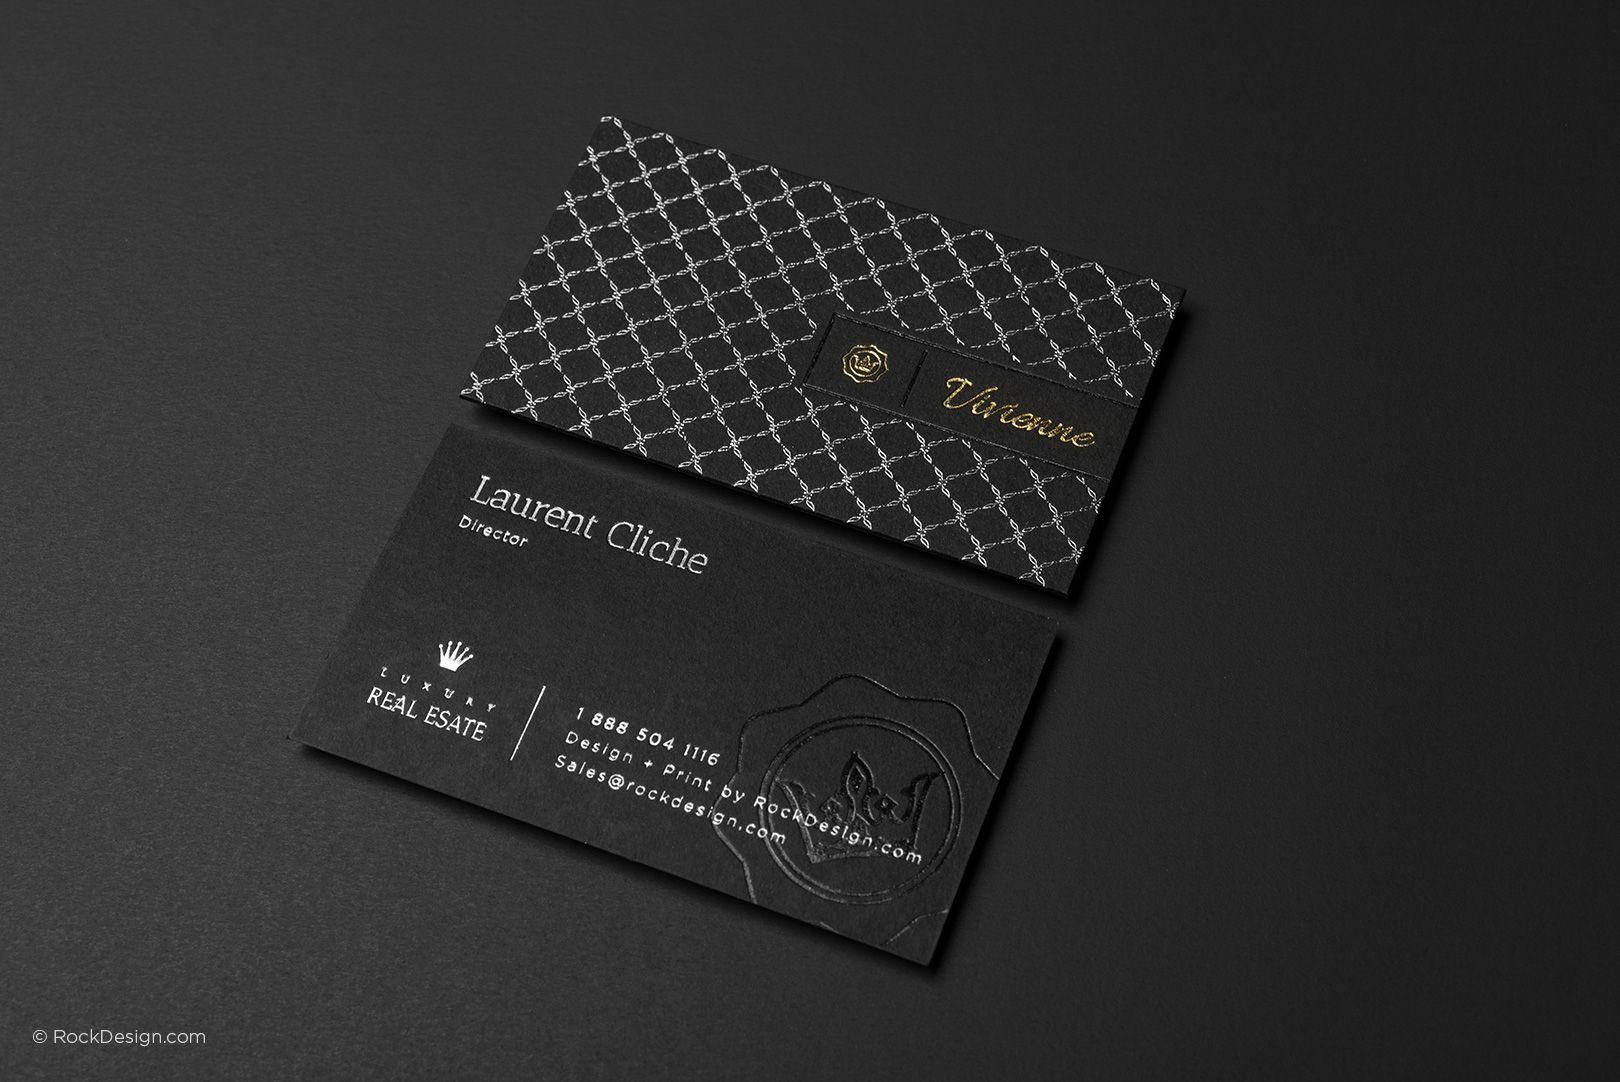 Black business cards office stationary pinterest for Upscale business cards